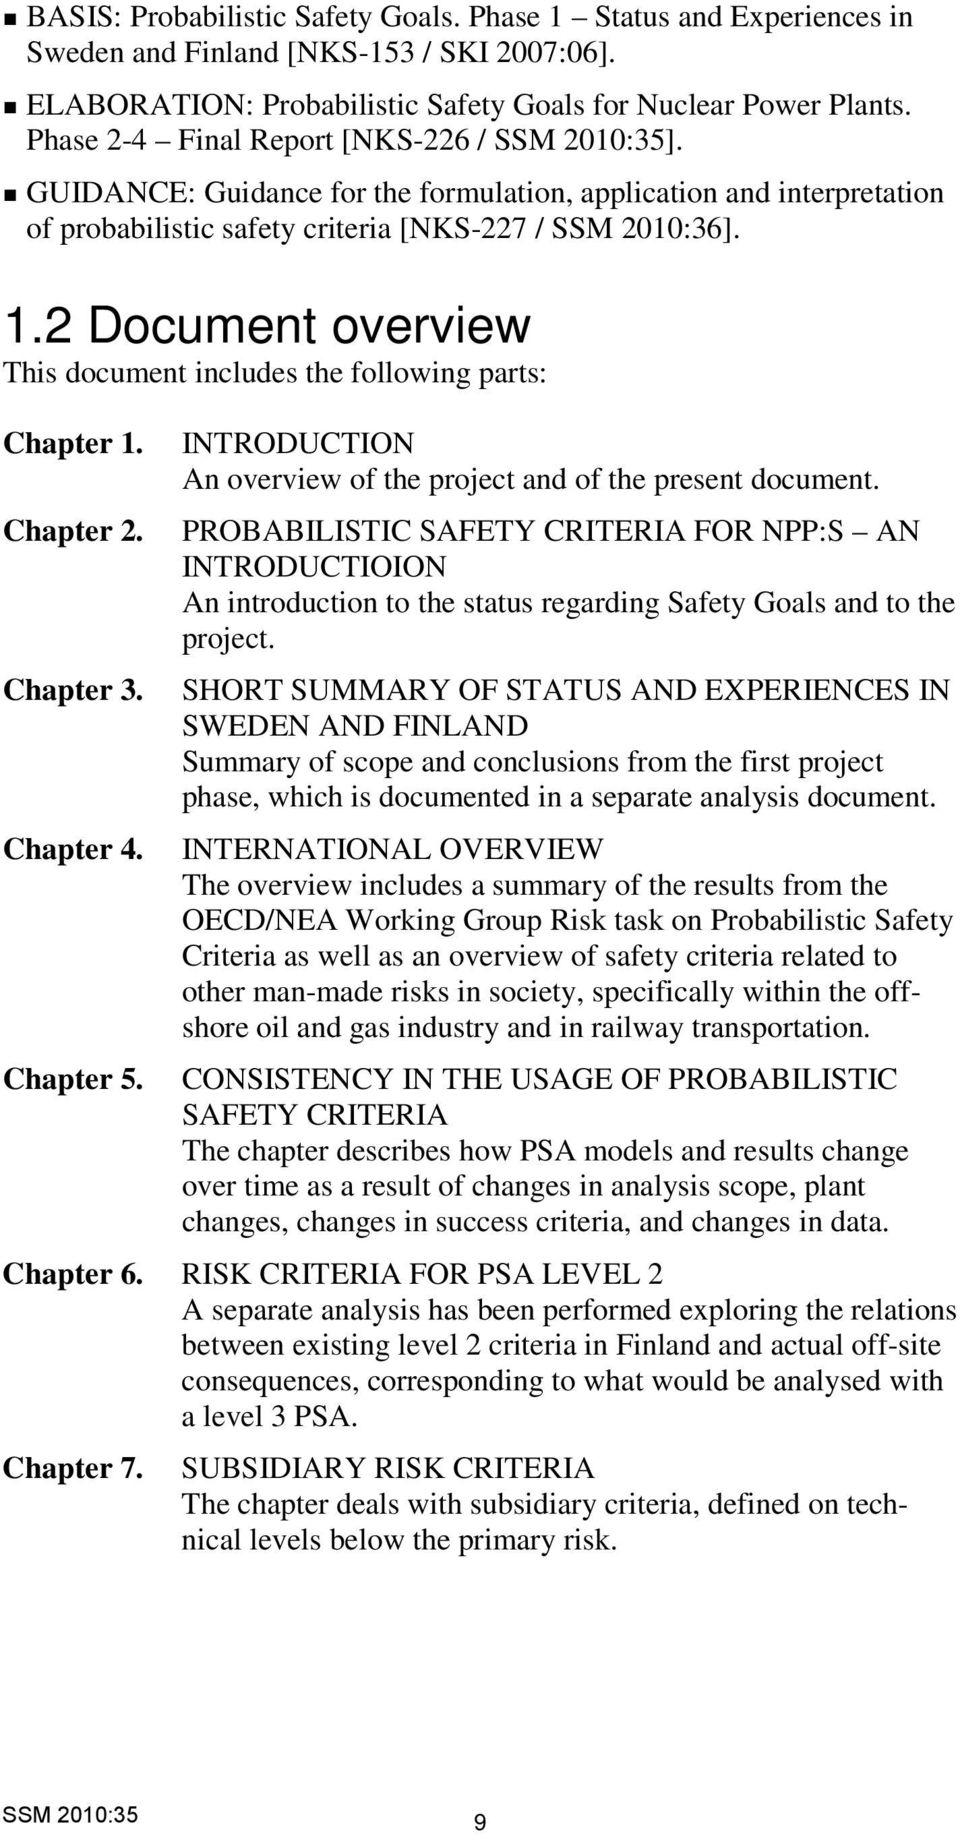 2 Document overview This document includes the following parts: Chapter 1. Chapter 2. Chapter 3. Chapter 4. Chapter 5. INTRODUCTION An overview of the project and of the present document.